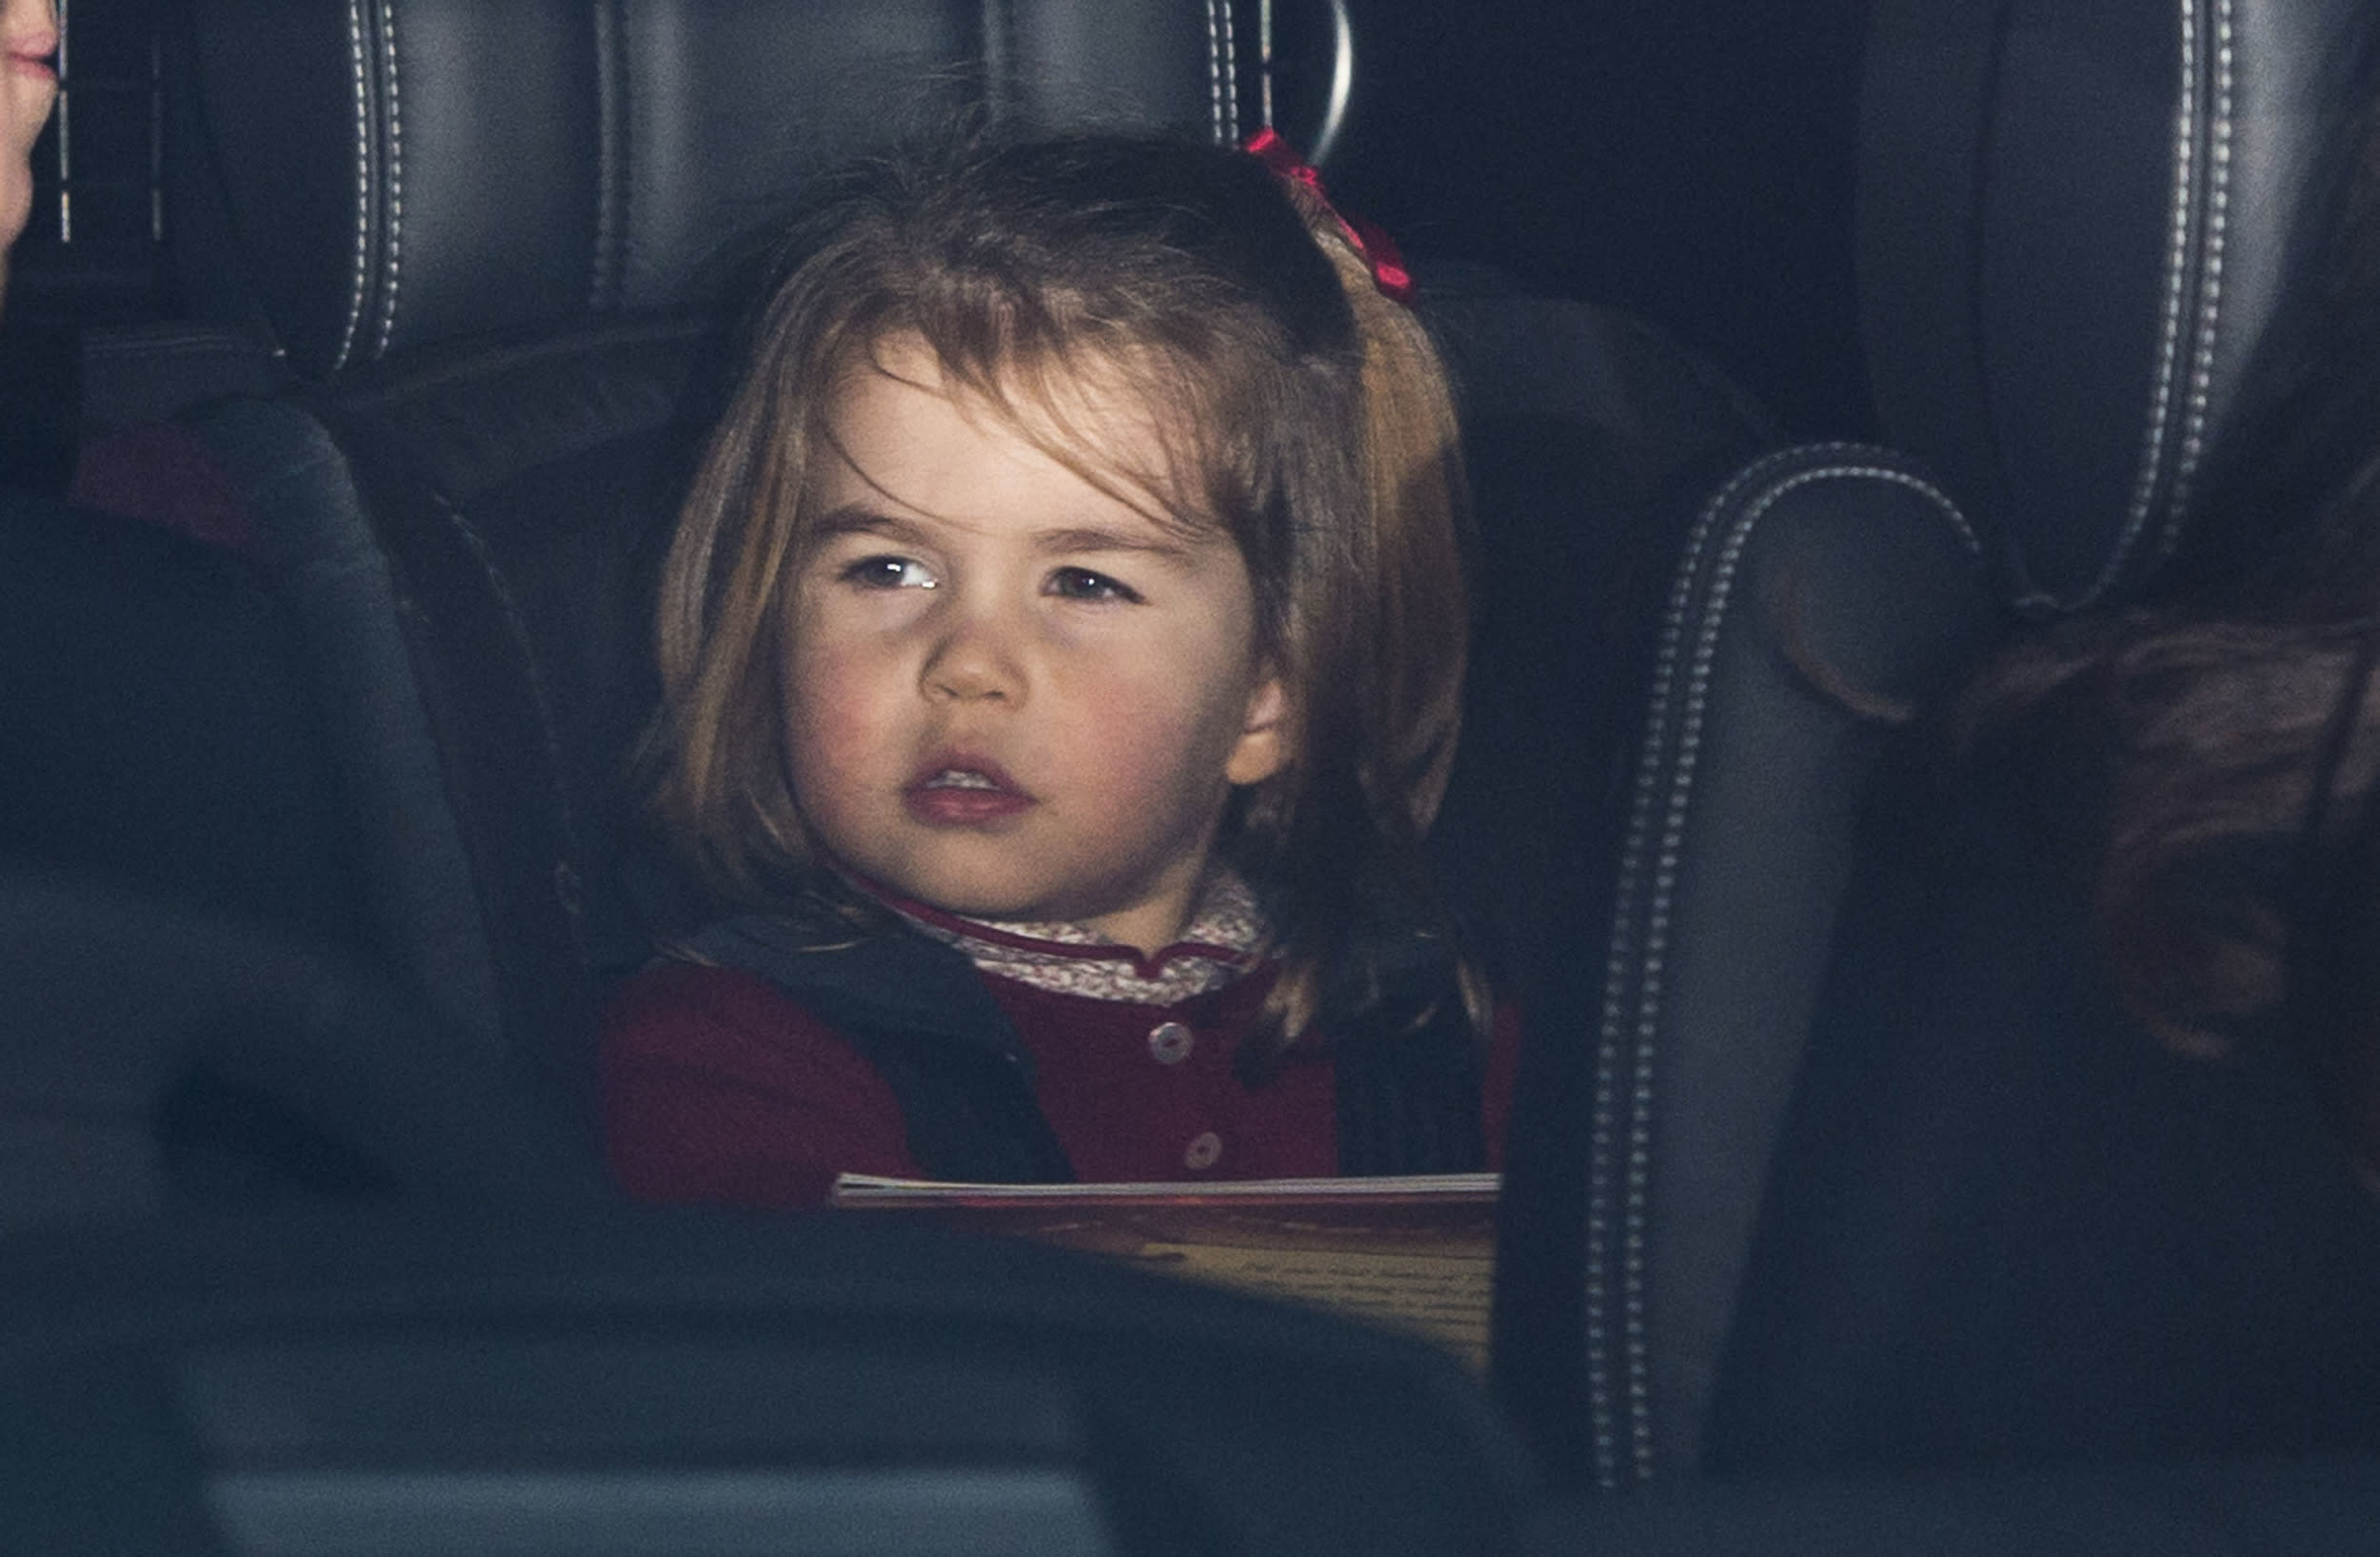 LONDON, ENGLAND - DECEMBER 20: Princess Charlotte of Cambridge attends a Christmas lunch for the extended Royal Family at Buckingham Palace on December 20, 2017 in London, England. (Photo by Mark Cuthbert/UK Press via Getty Images)